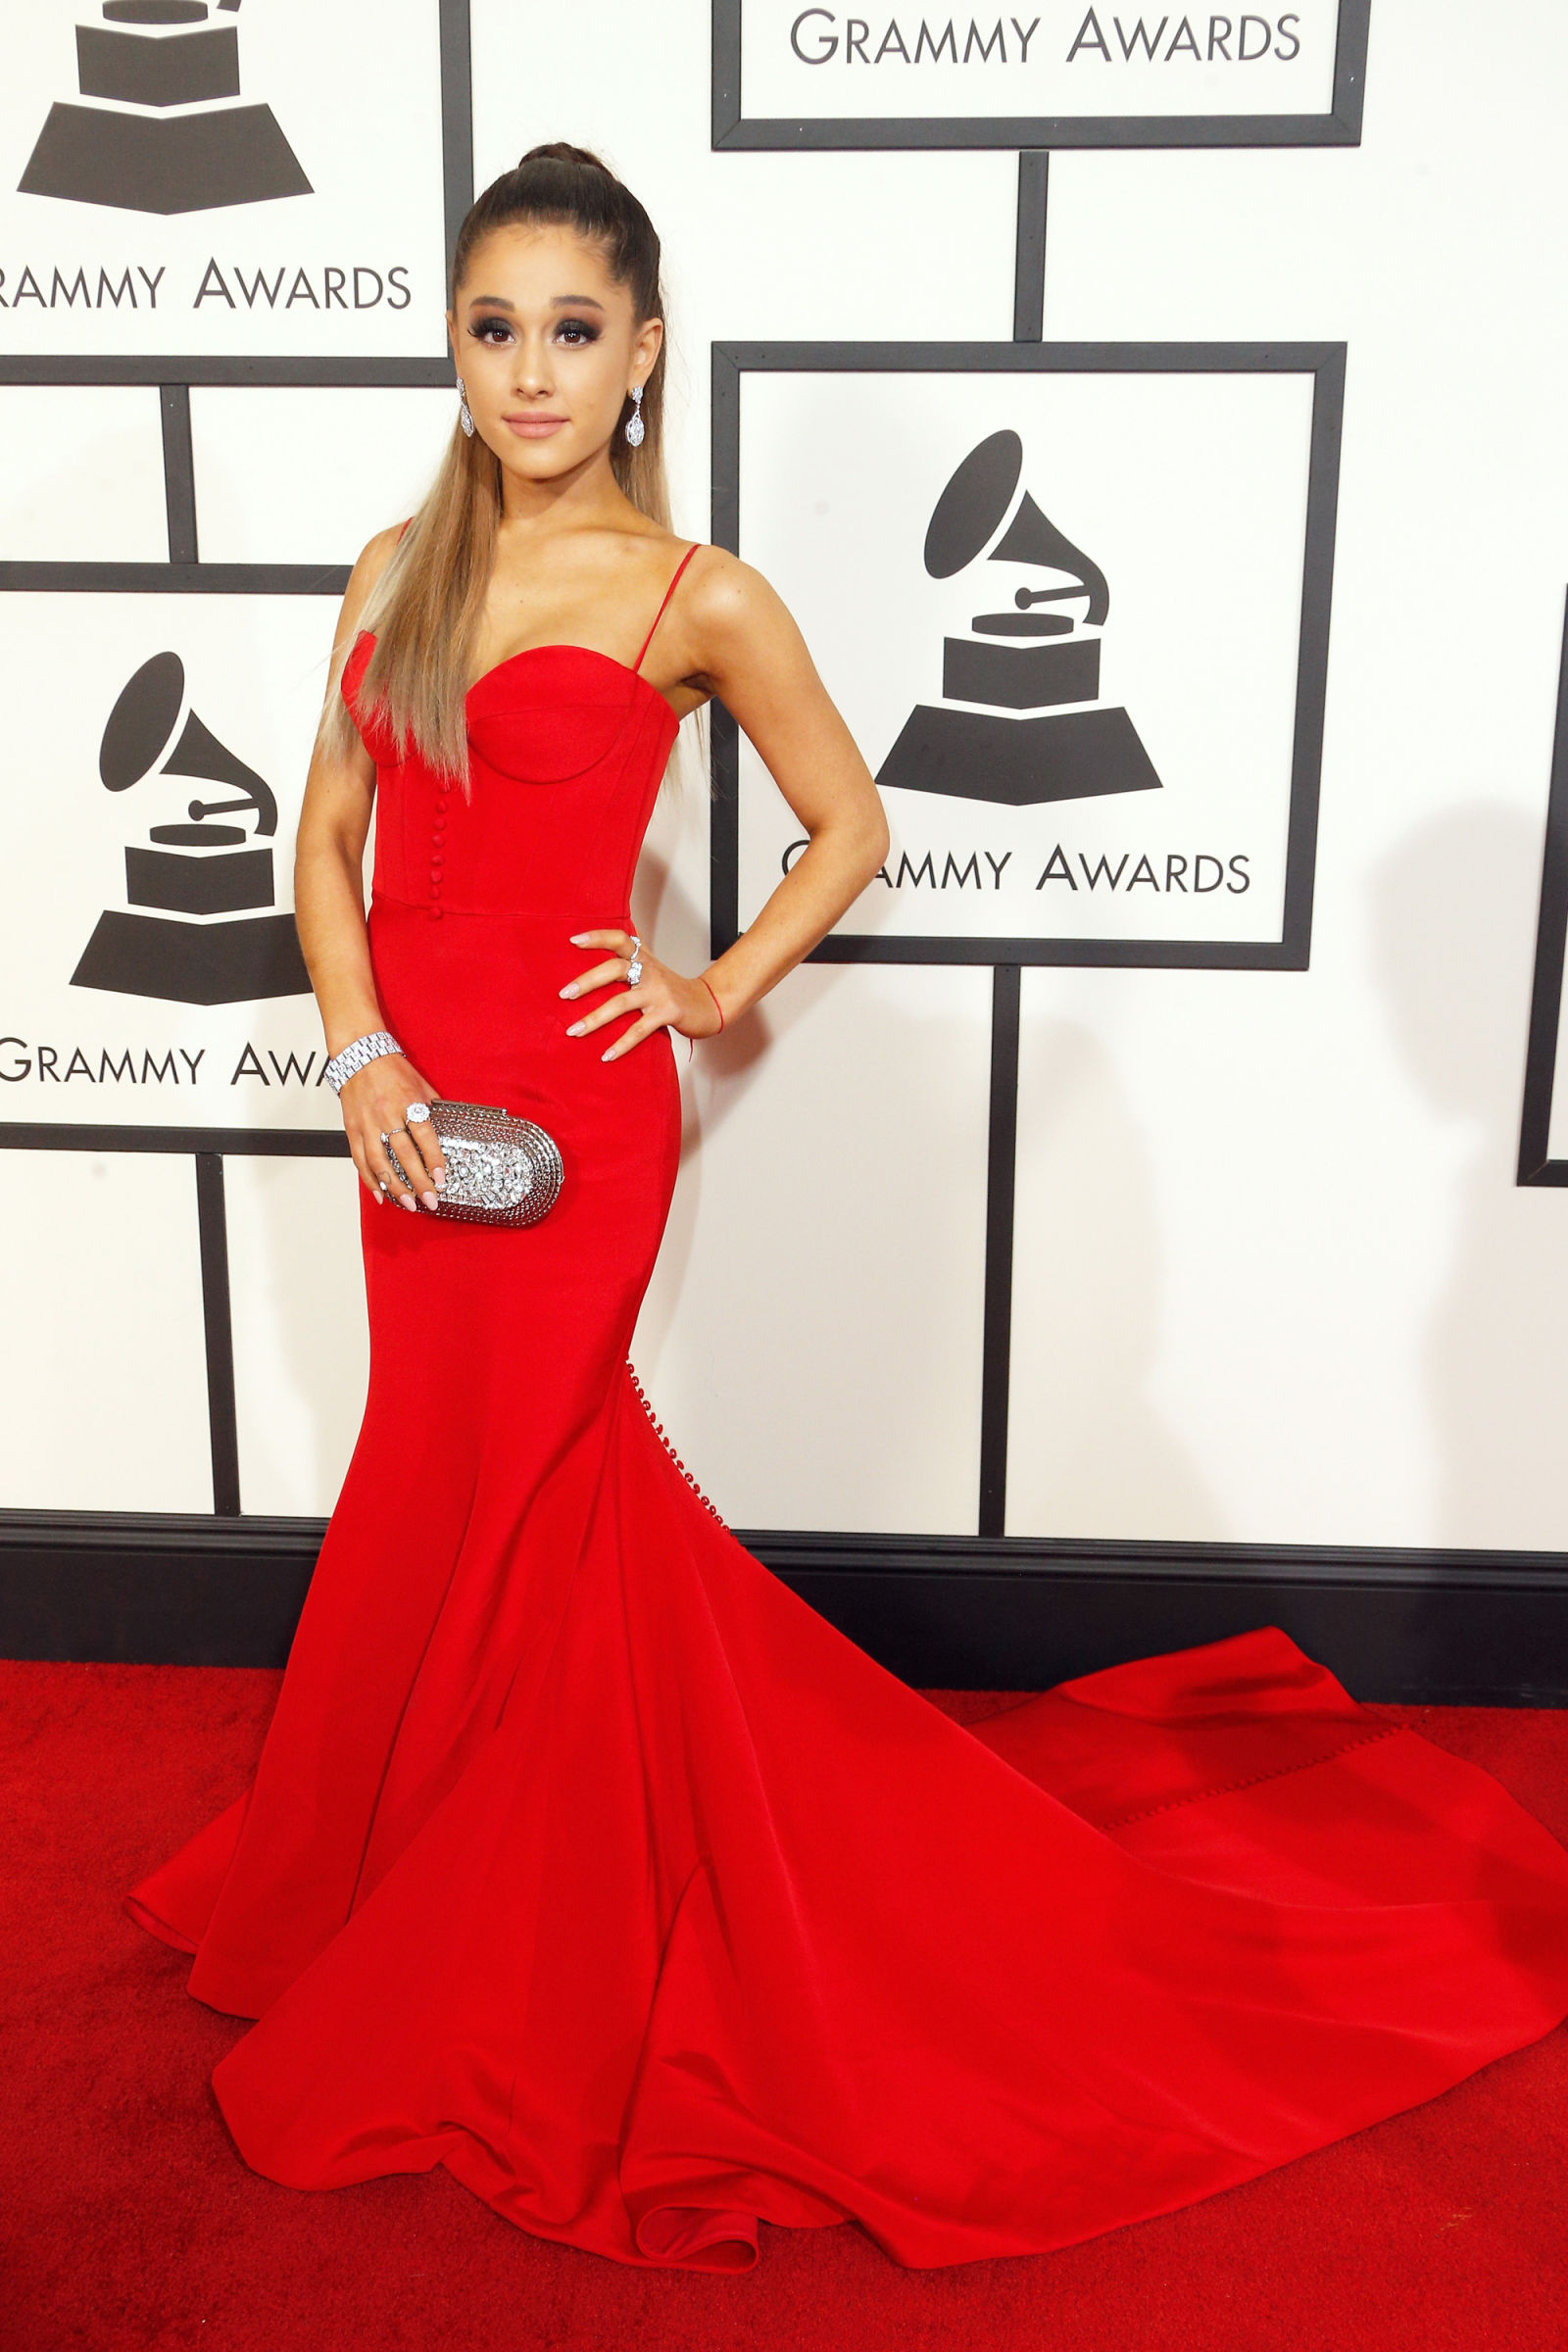 Ariana Grande Red Dress Grammy Awards 2016